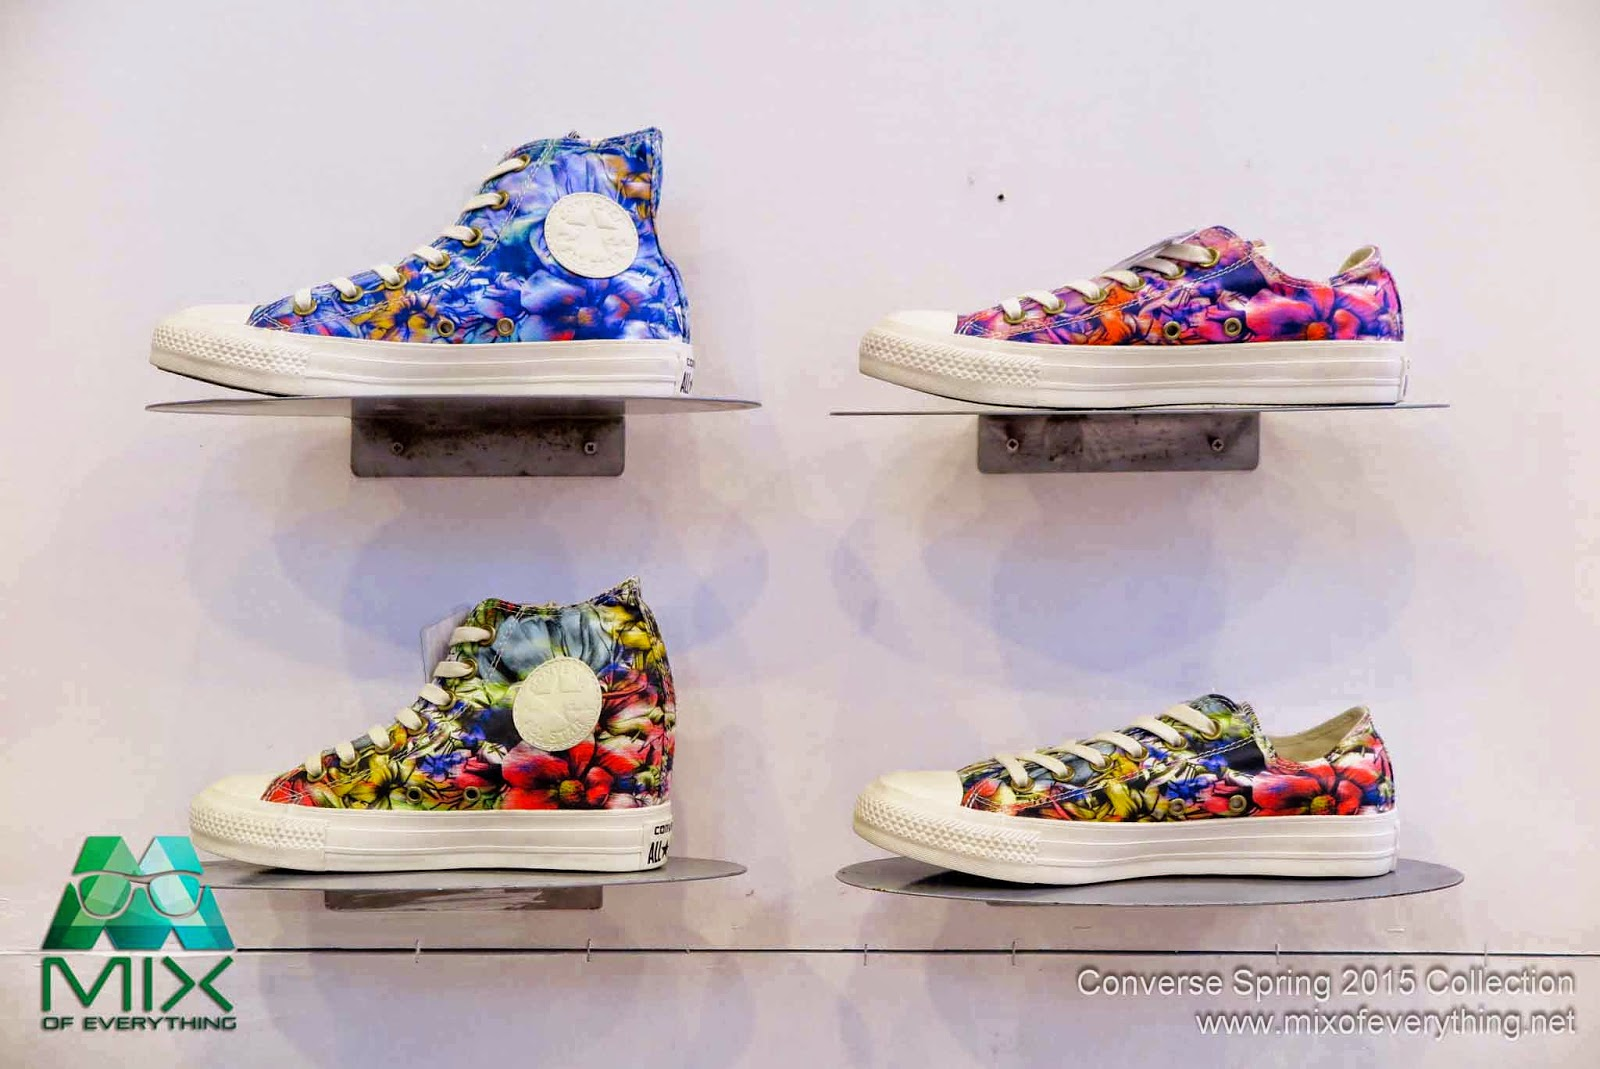 51771fbbbae925 Spring 2015 Converse All Star Collection Celebrates the Iconic Sneaker -  Hello! Welcome to my blog!